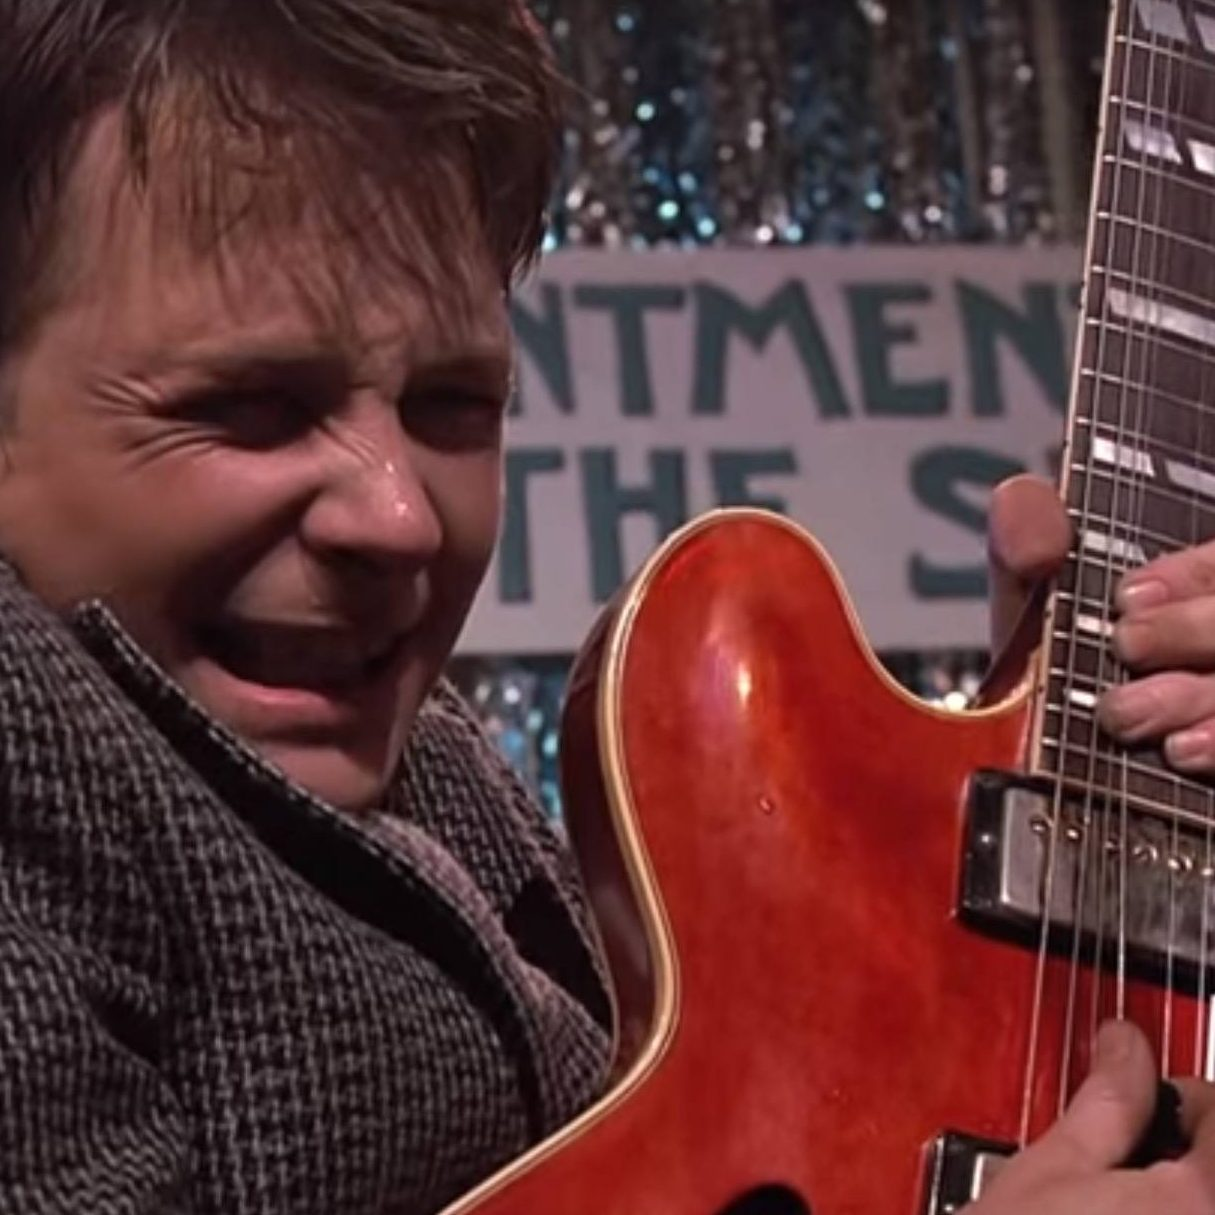 video october 21 back to the future marty mcfly gibson guitar e1602250641533 20 Things You Might Not Have Known About The Late, Great Eddie Van Halen